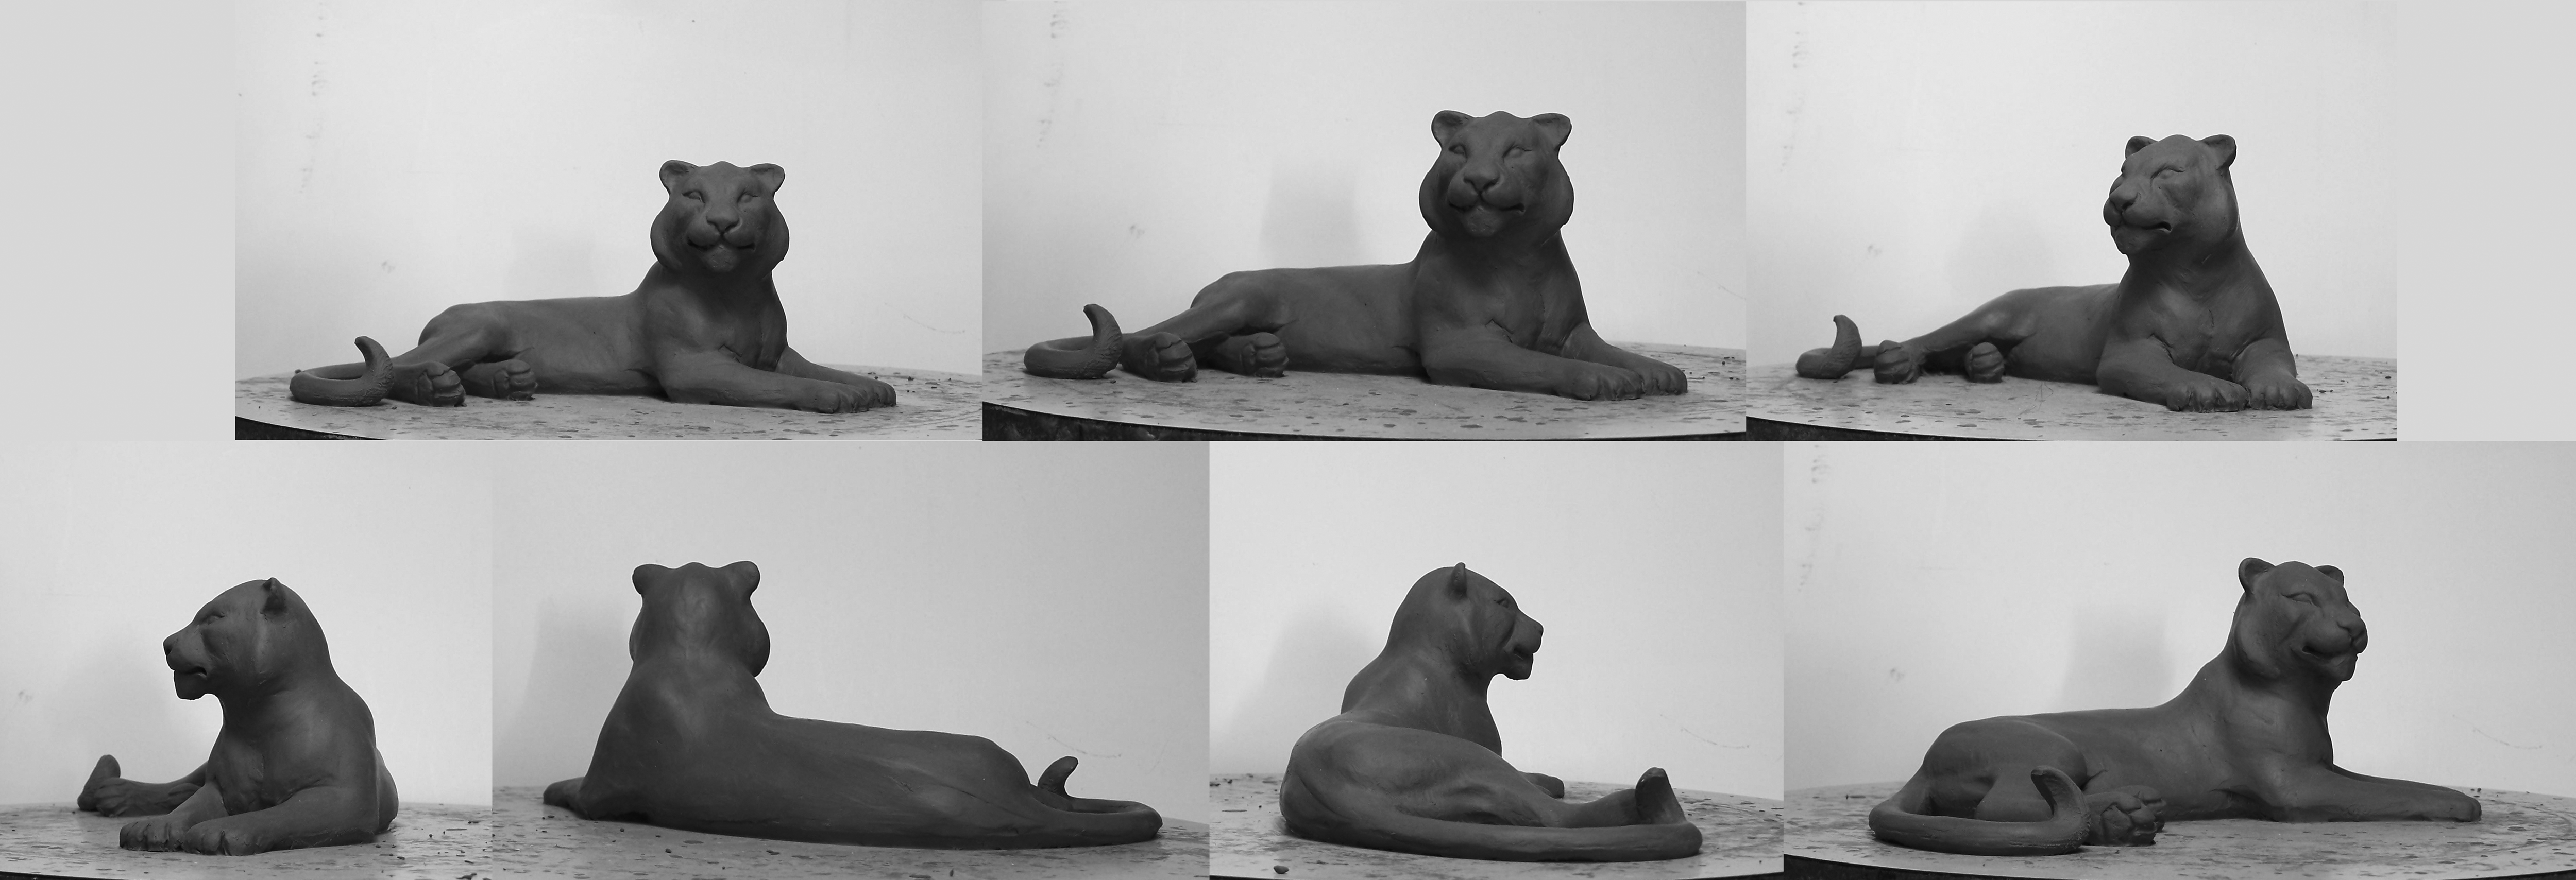 tigress sculpture